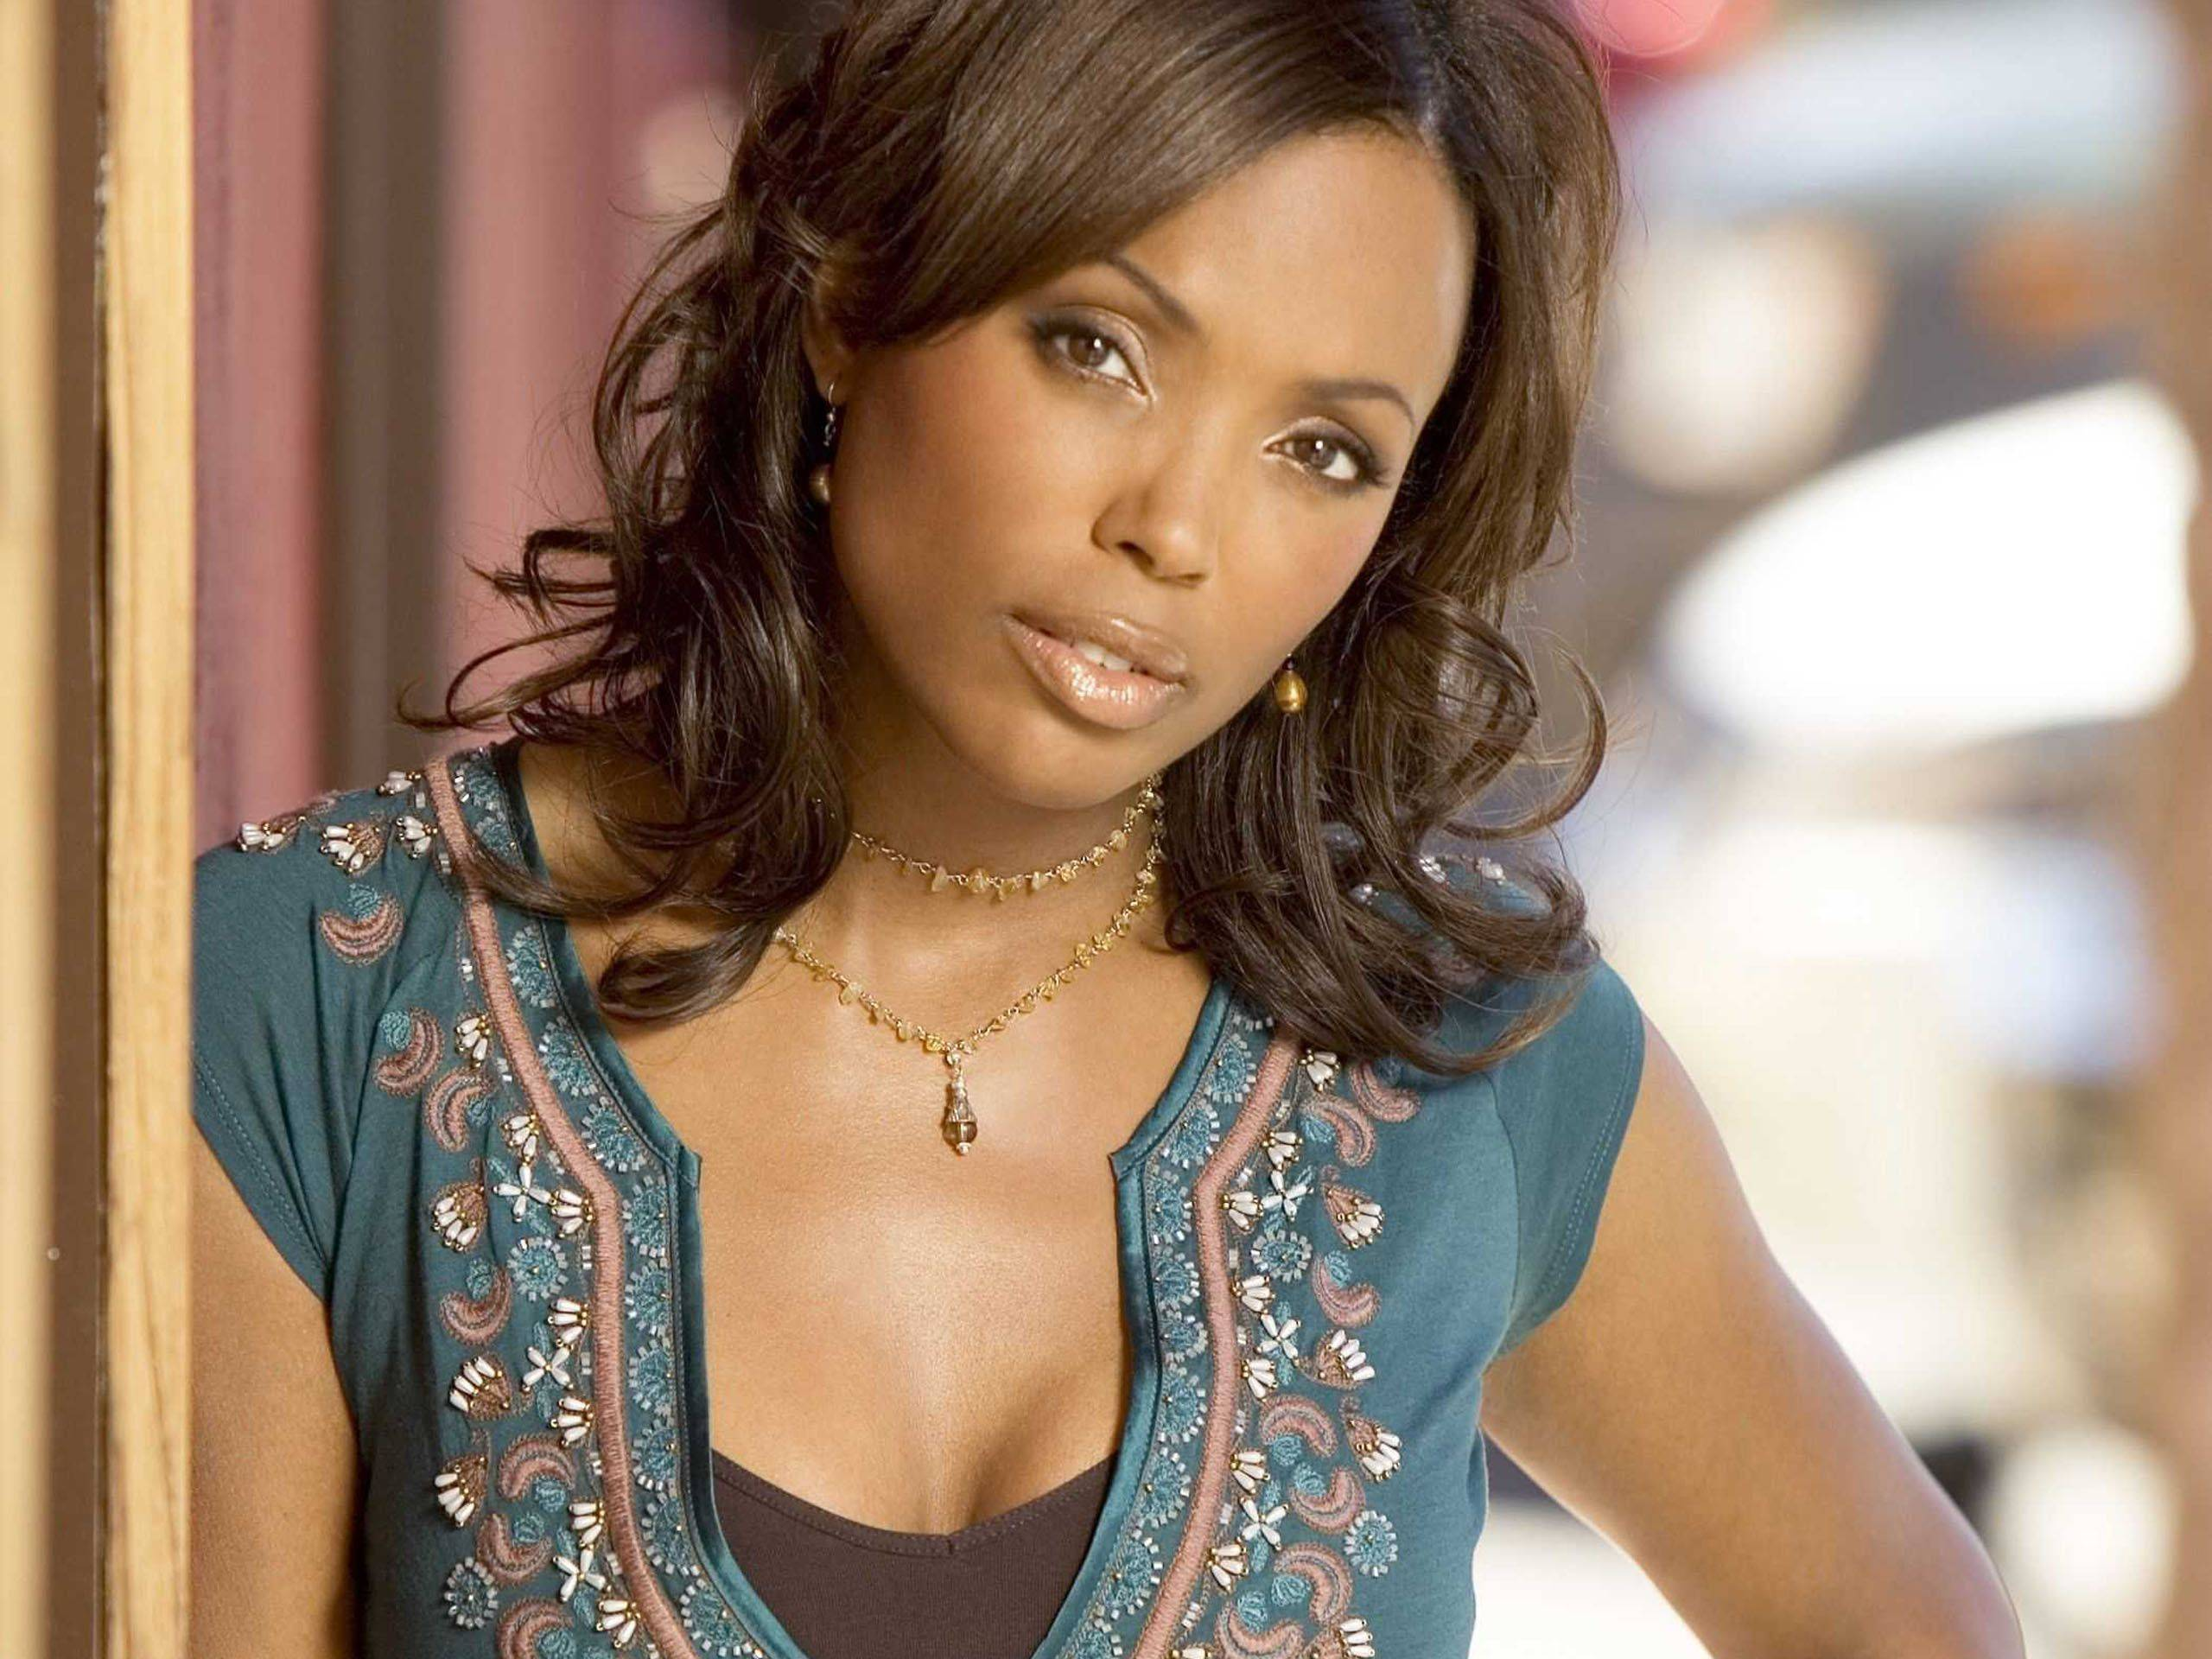 aisha tyler stand upaisha tyler friends, aisha tyler instagram, aisha tyler tall, aisha tyler lana, aisha tyler net worth, aisha tyler youtube, aisha tyler family, aisha tyler roles, aisha tyler wiki, aisha tyler archer, aisha tyler watch dogs, aisha tyler stand up, aisha tyler travis fimmel, aisha tyler, aisha tyler podcast, aisha tyler twitter, aisha tyler ghost whisperer, aisha tyler ubisoft, aisha tyler girl on guy, aisha tyler 2015